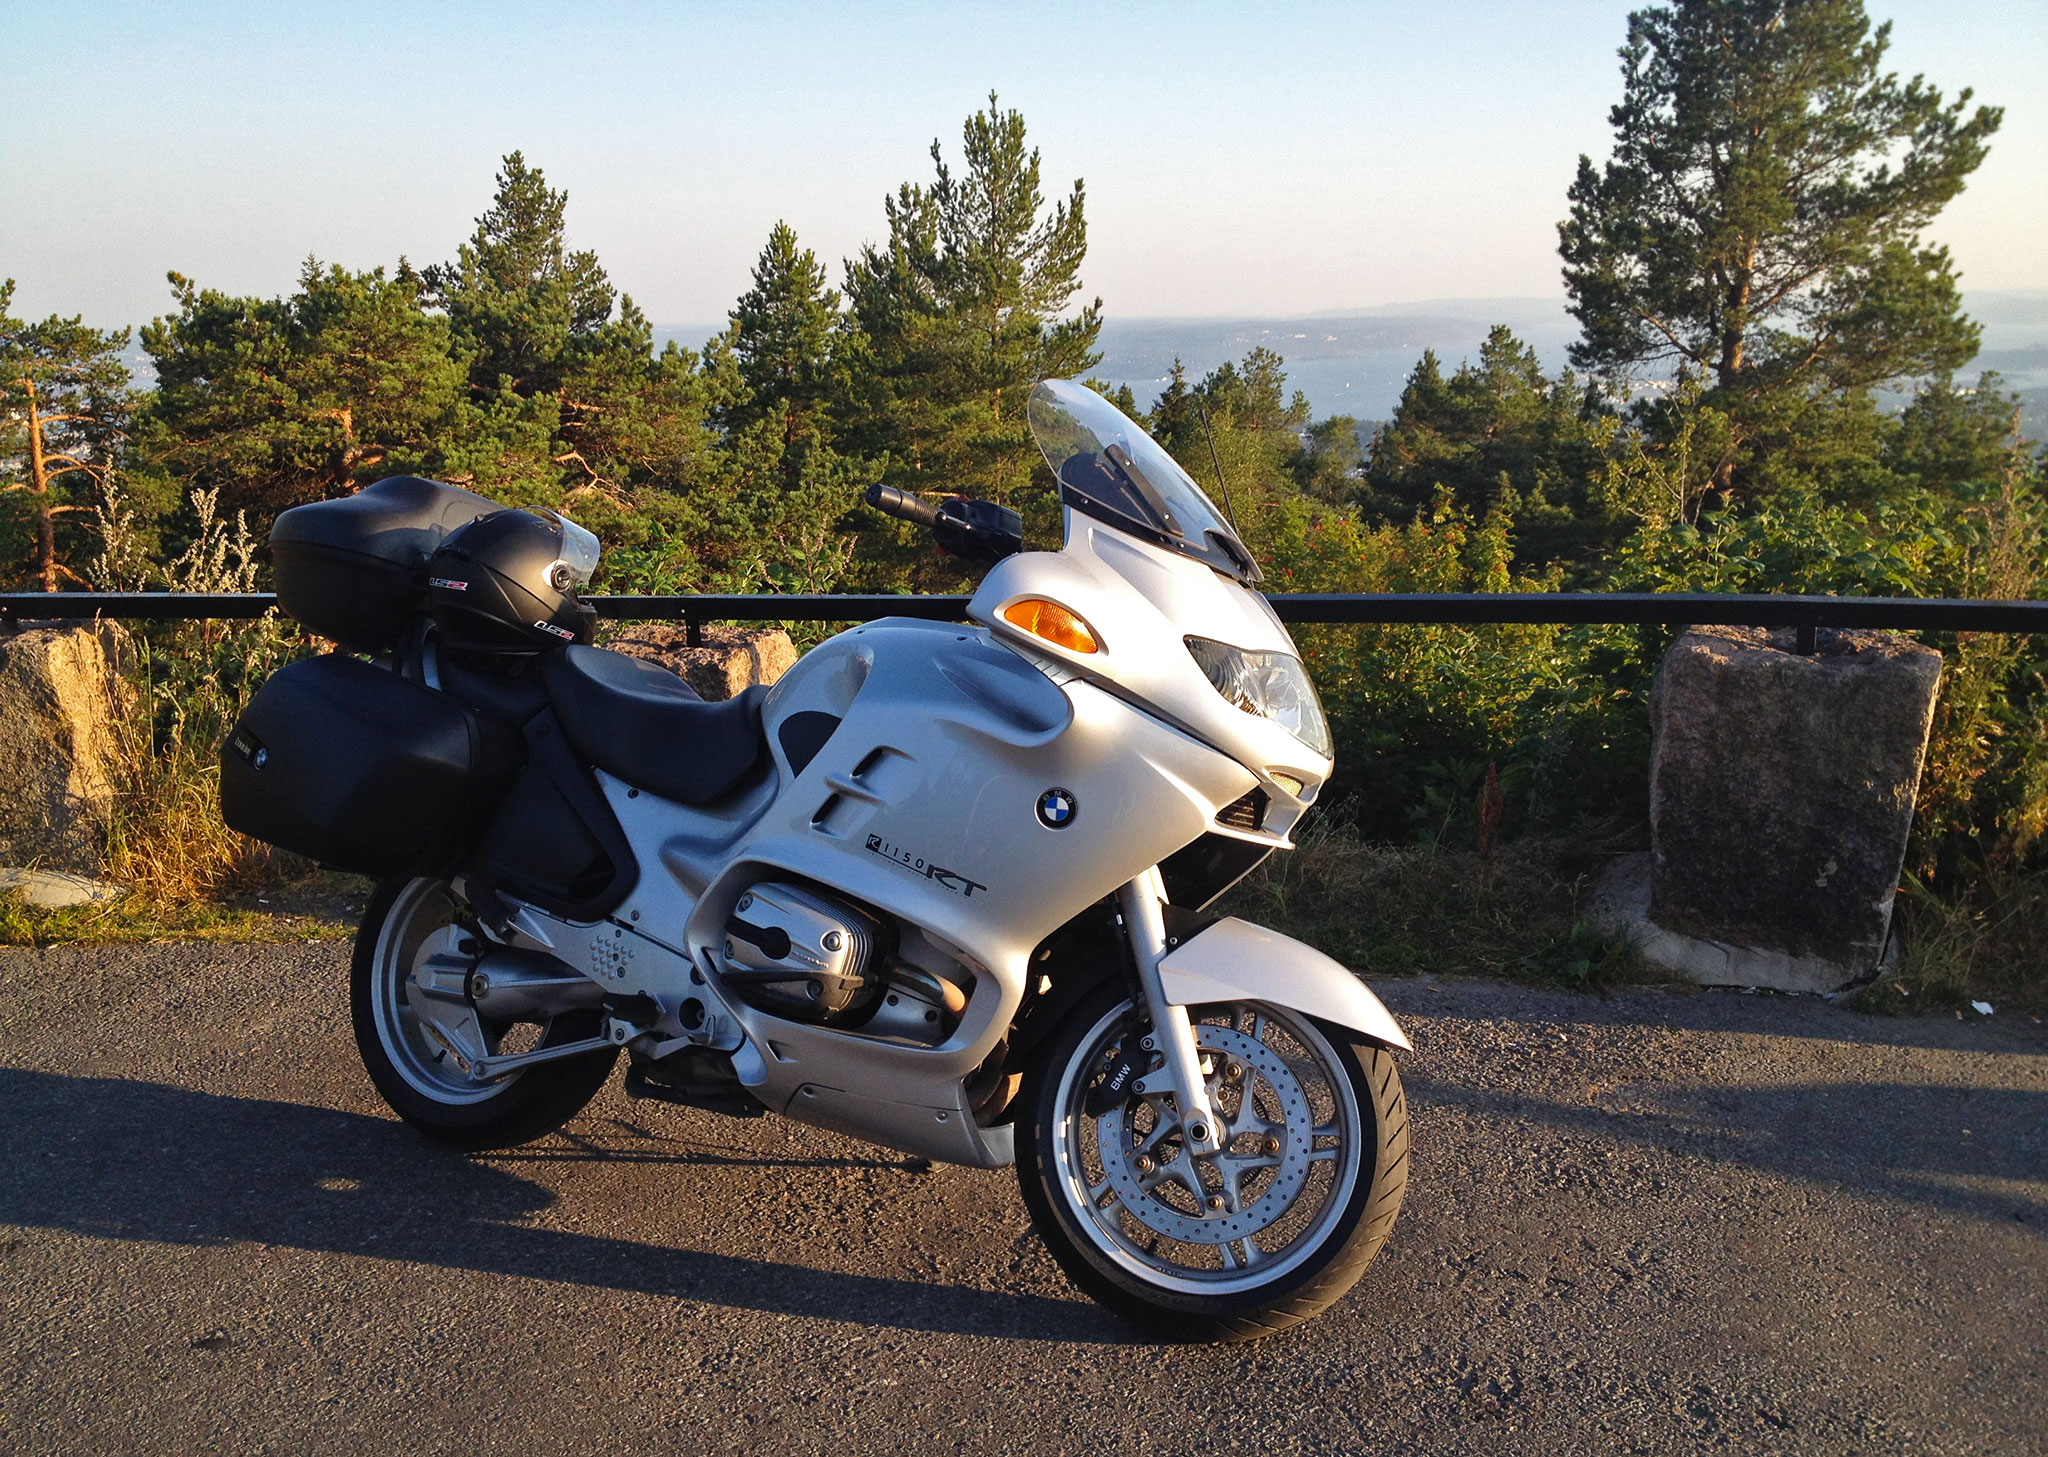 Out riding with the BMW R1150RT 2003